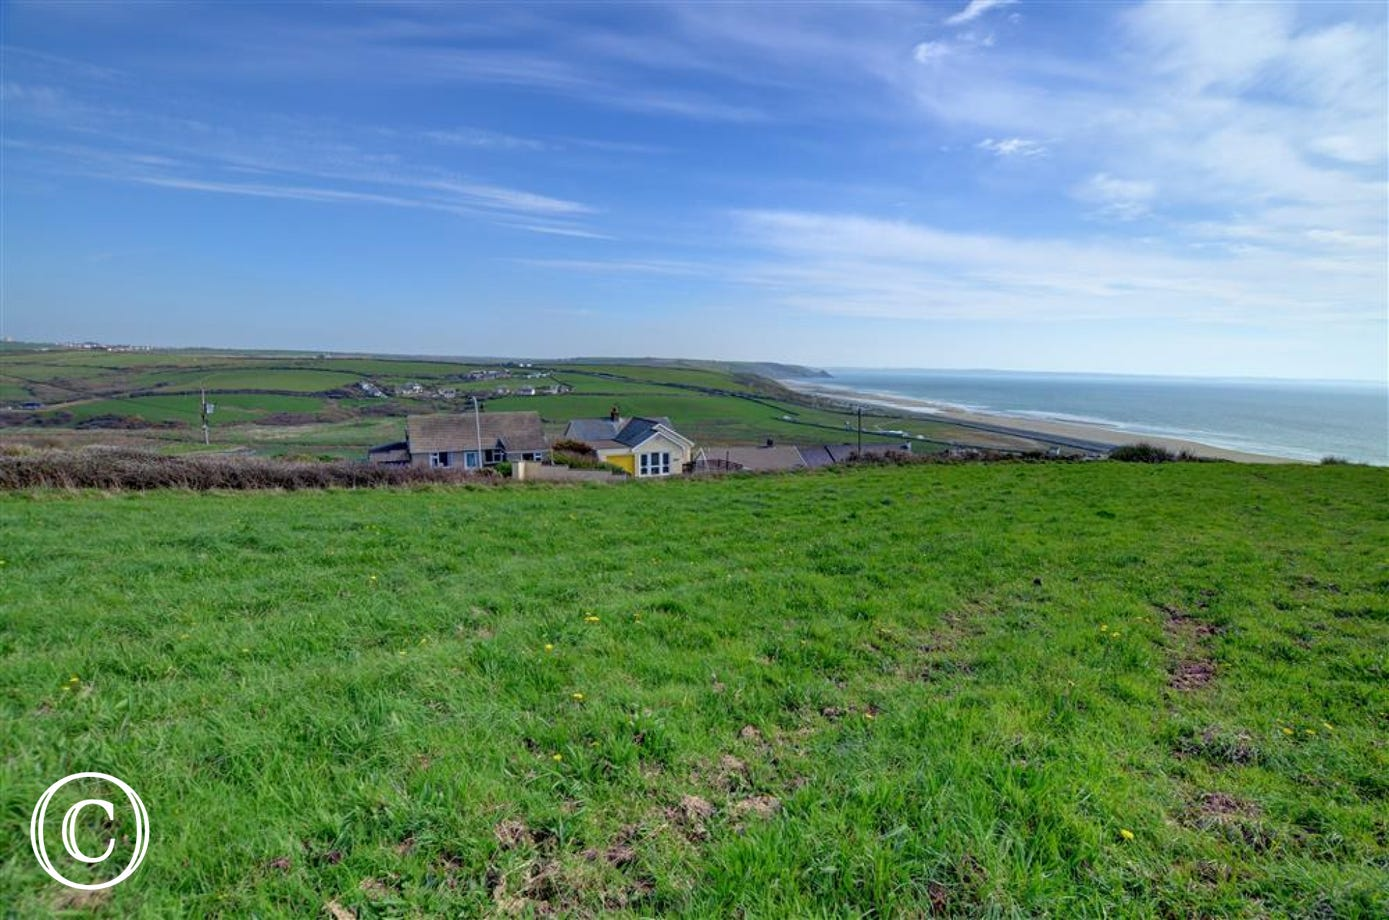 The property has a wonderful view over surrounding fields and coastline